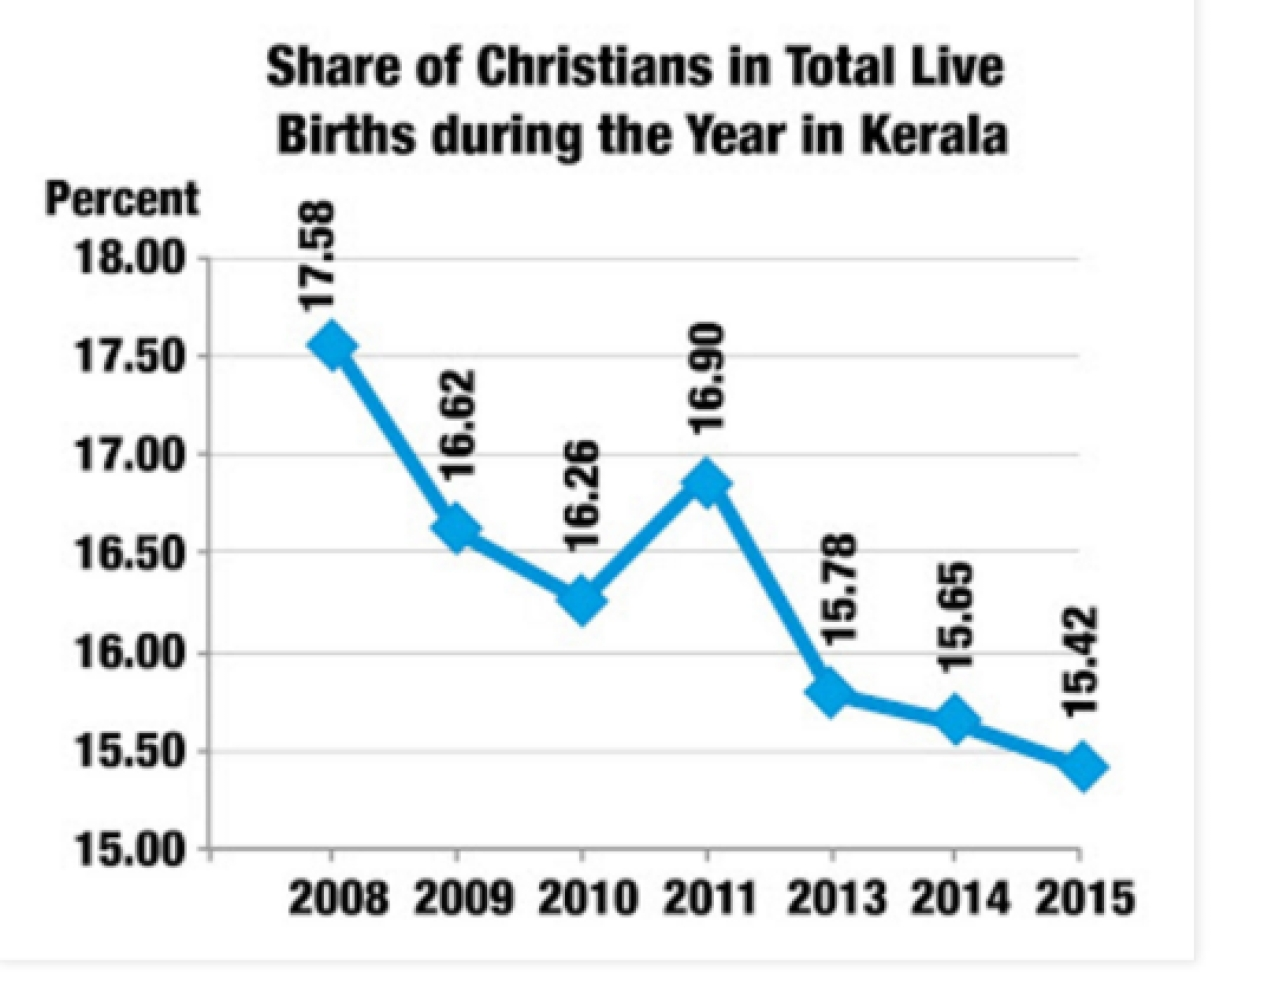 Share of Christians in total live births